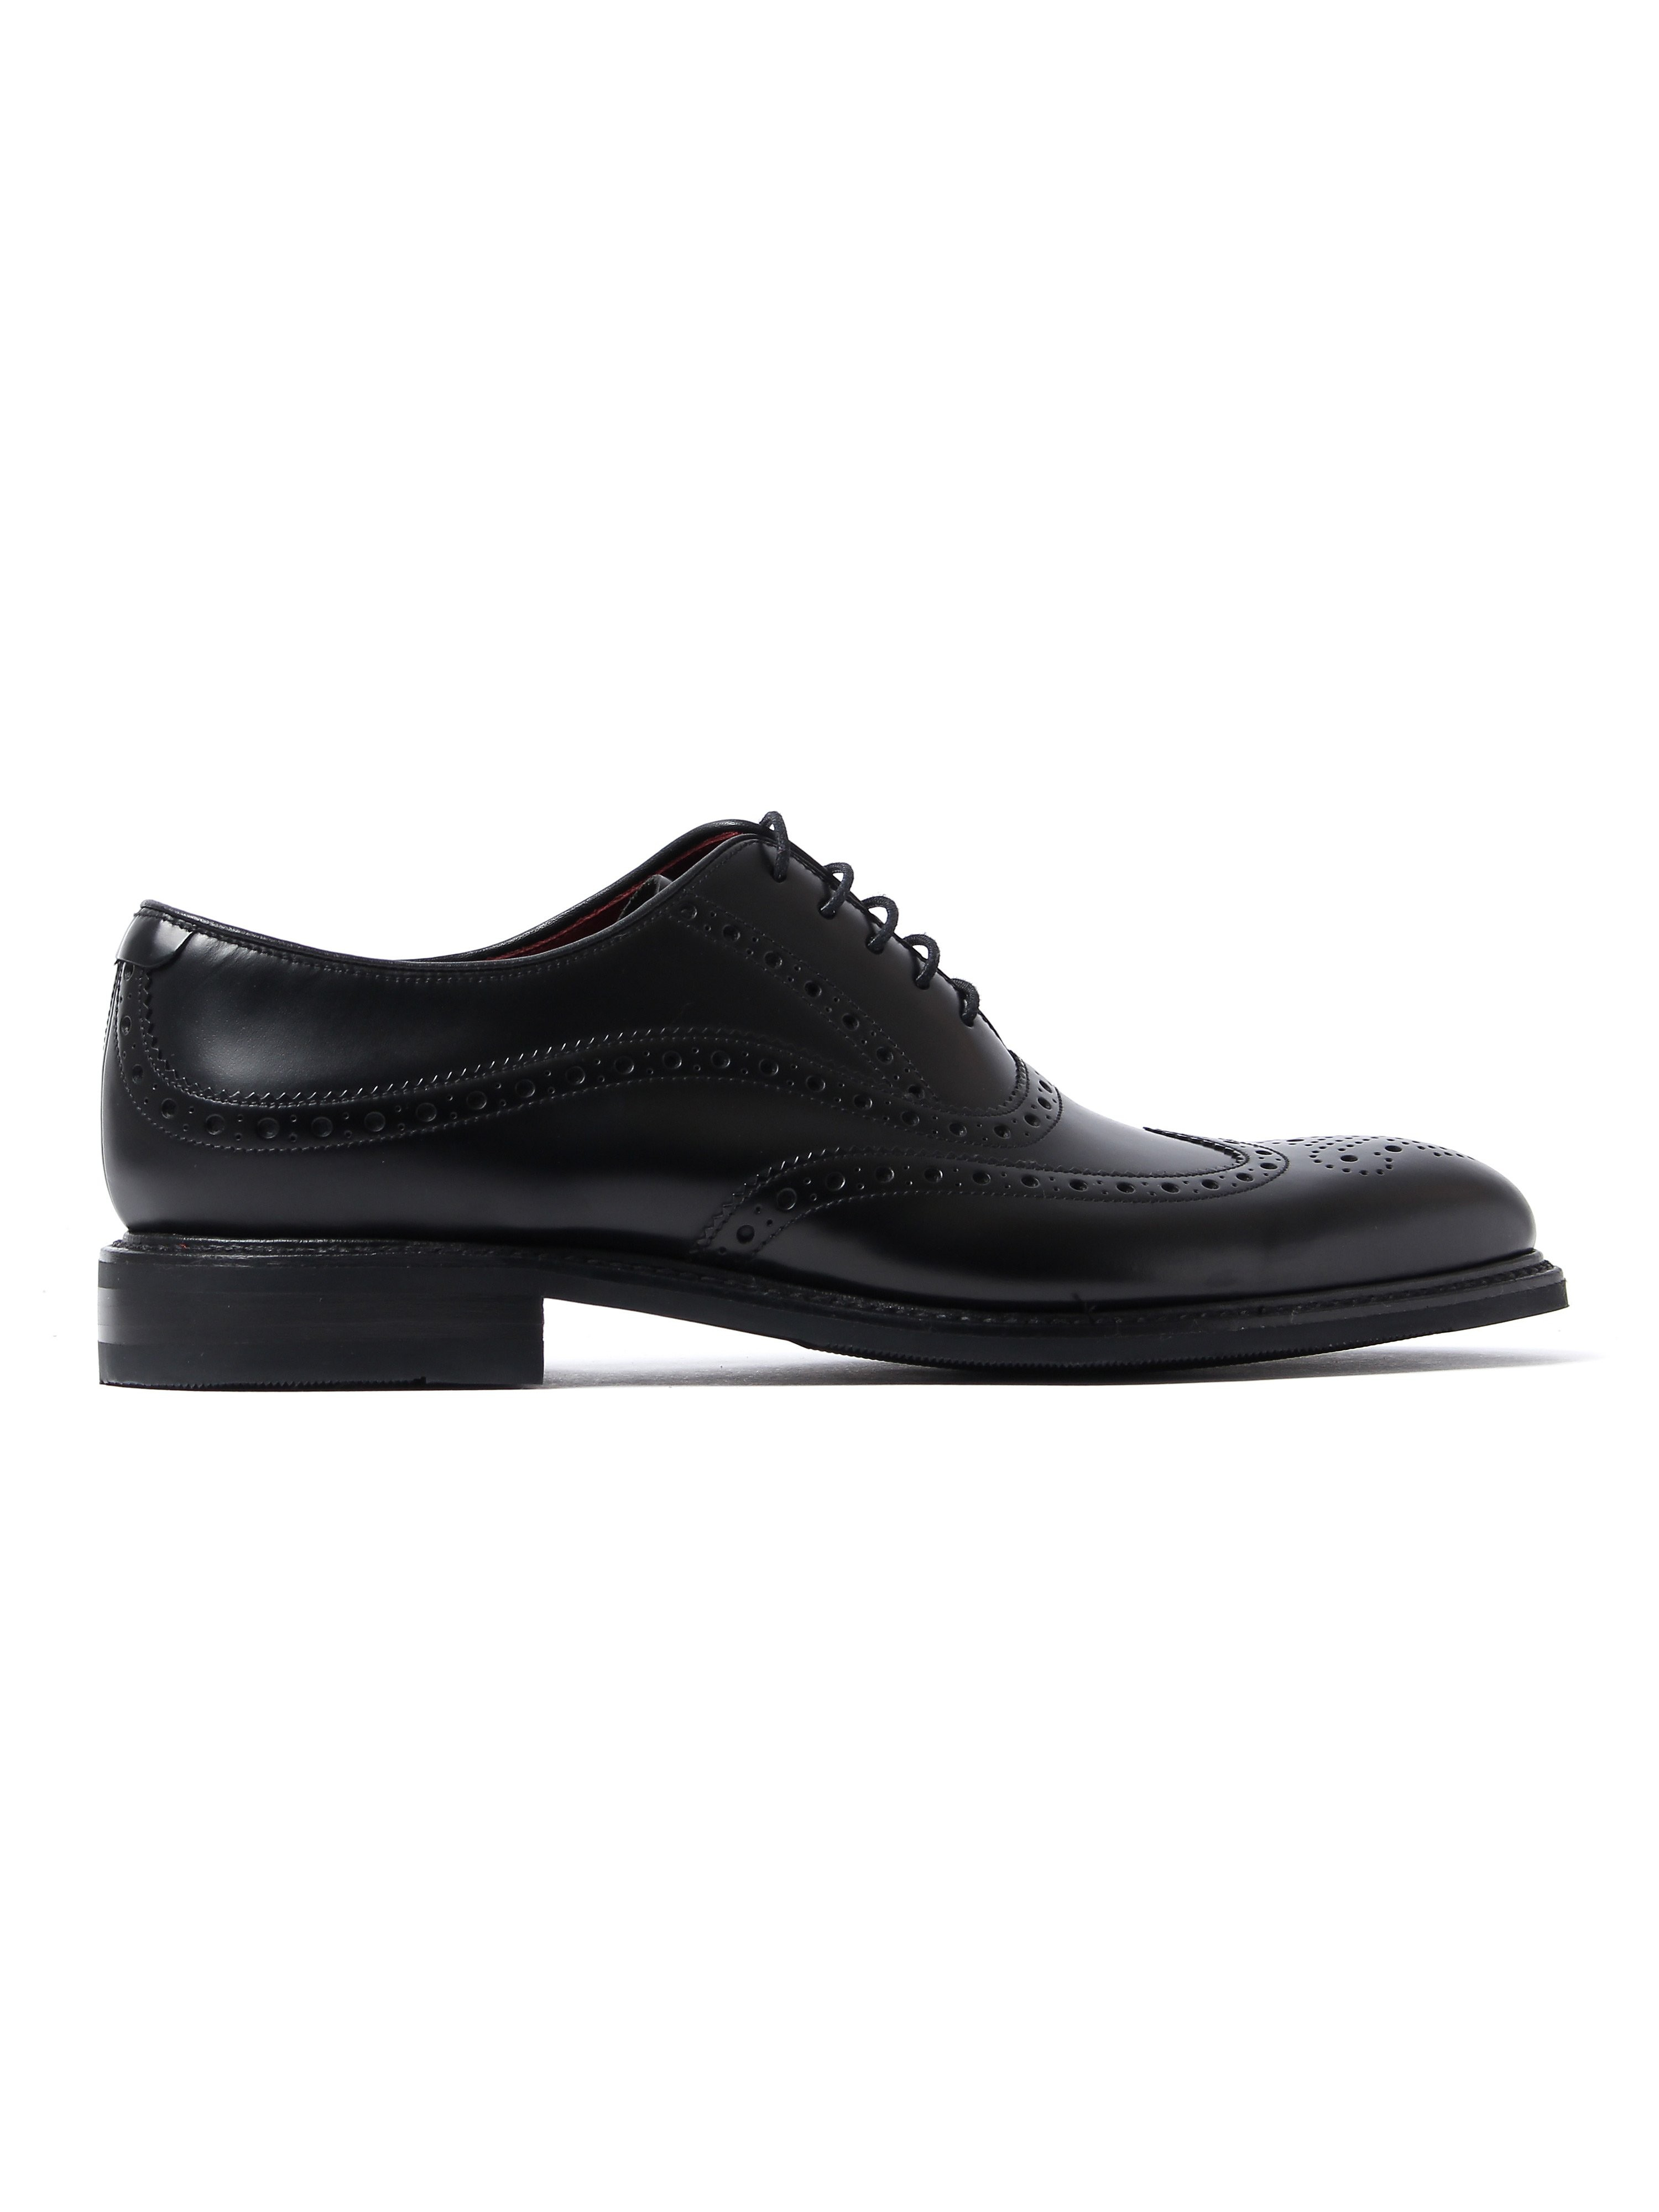 Loake Men's Demon Shadow Brogue Shoes - Black